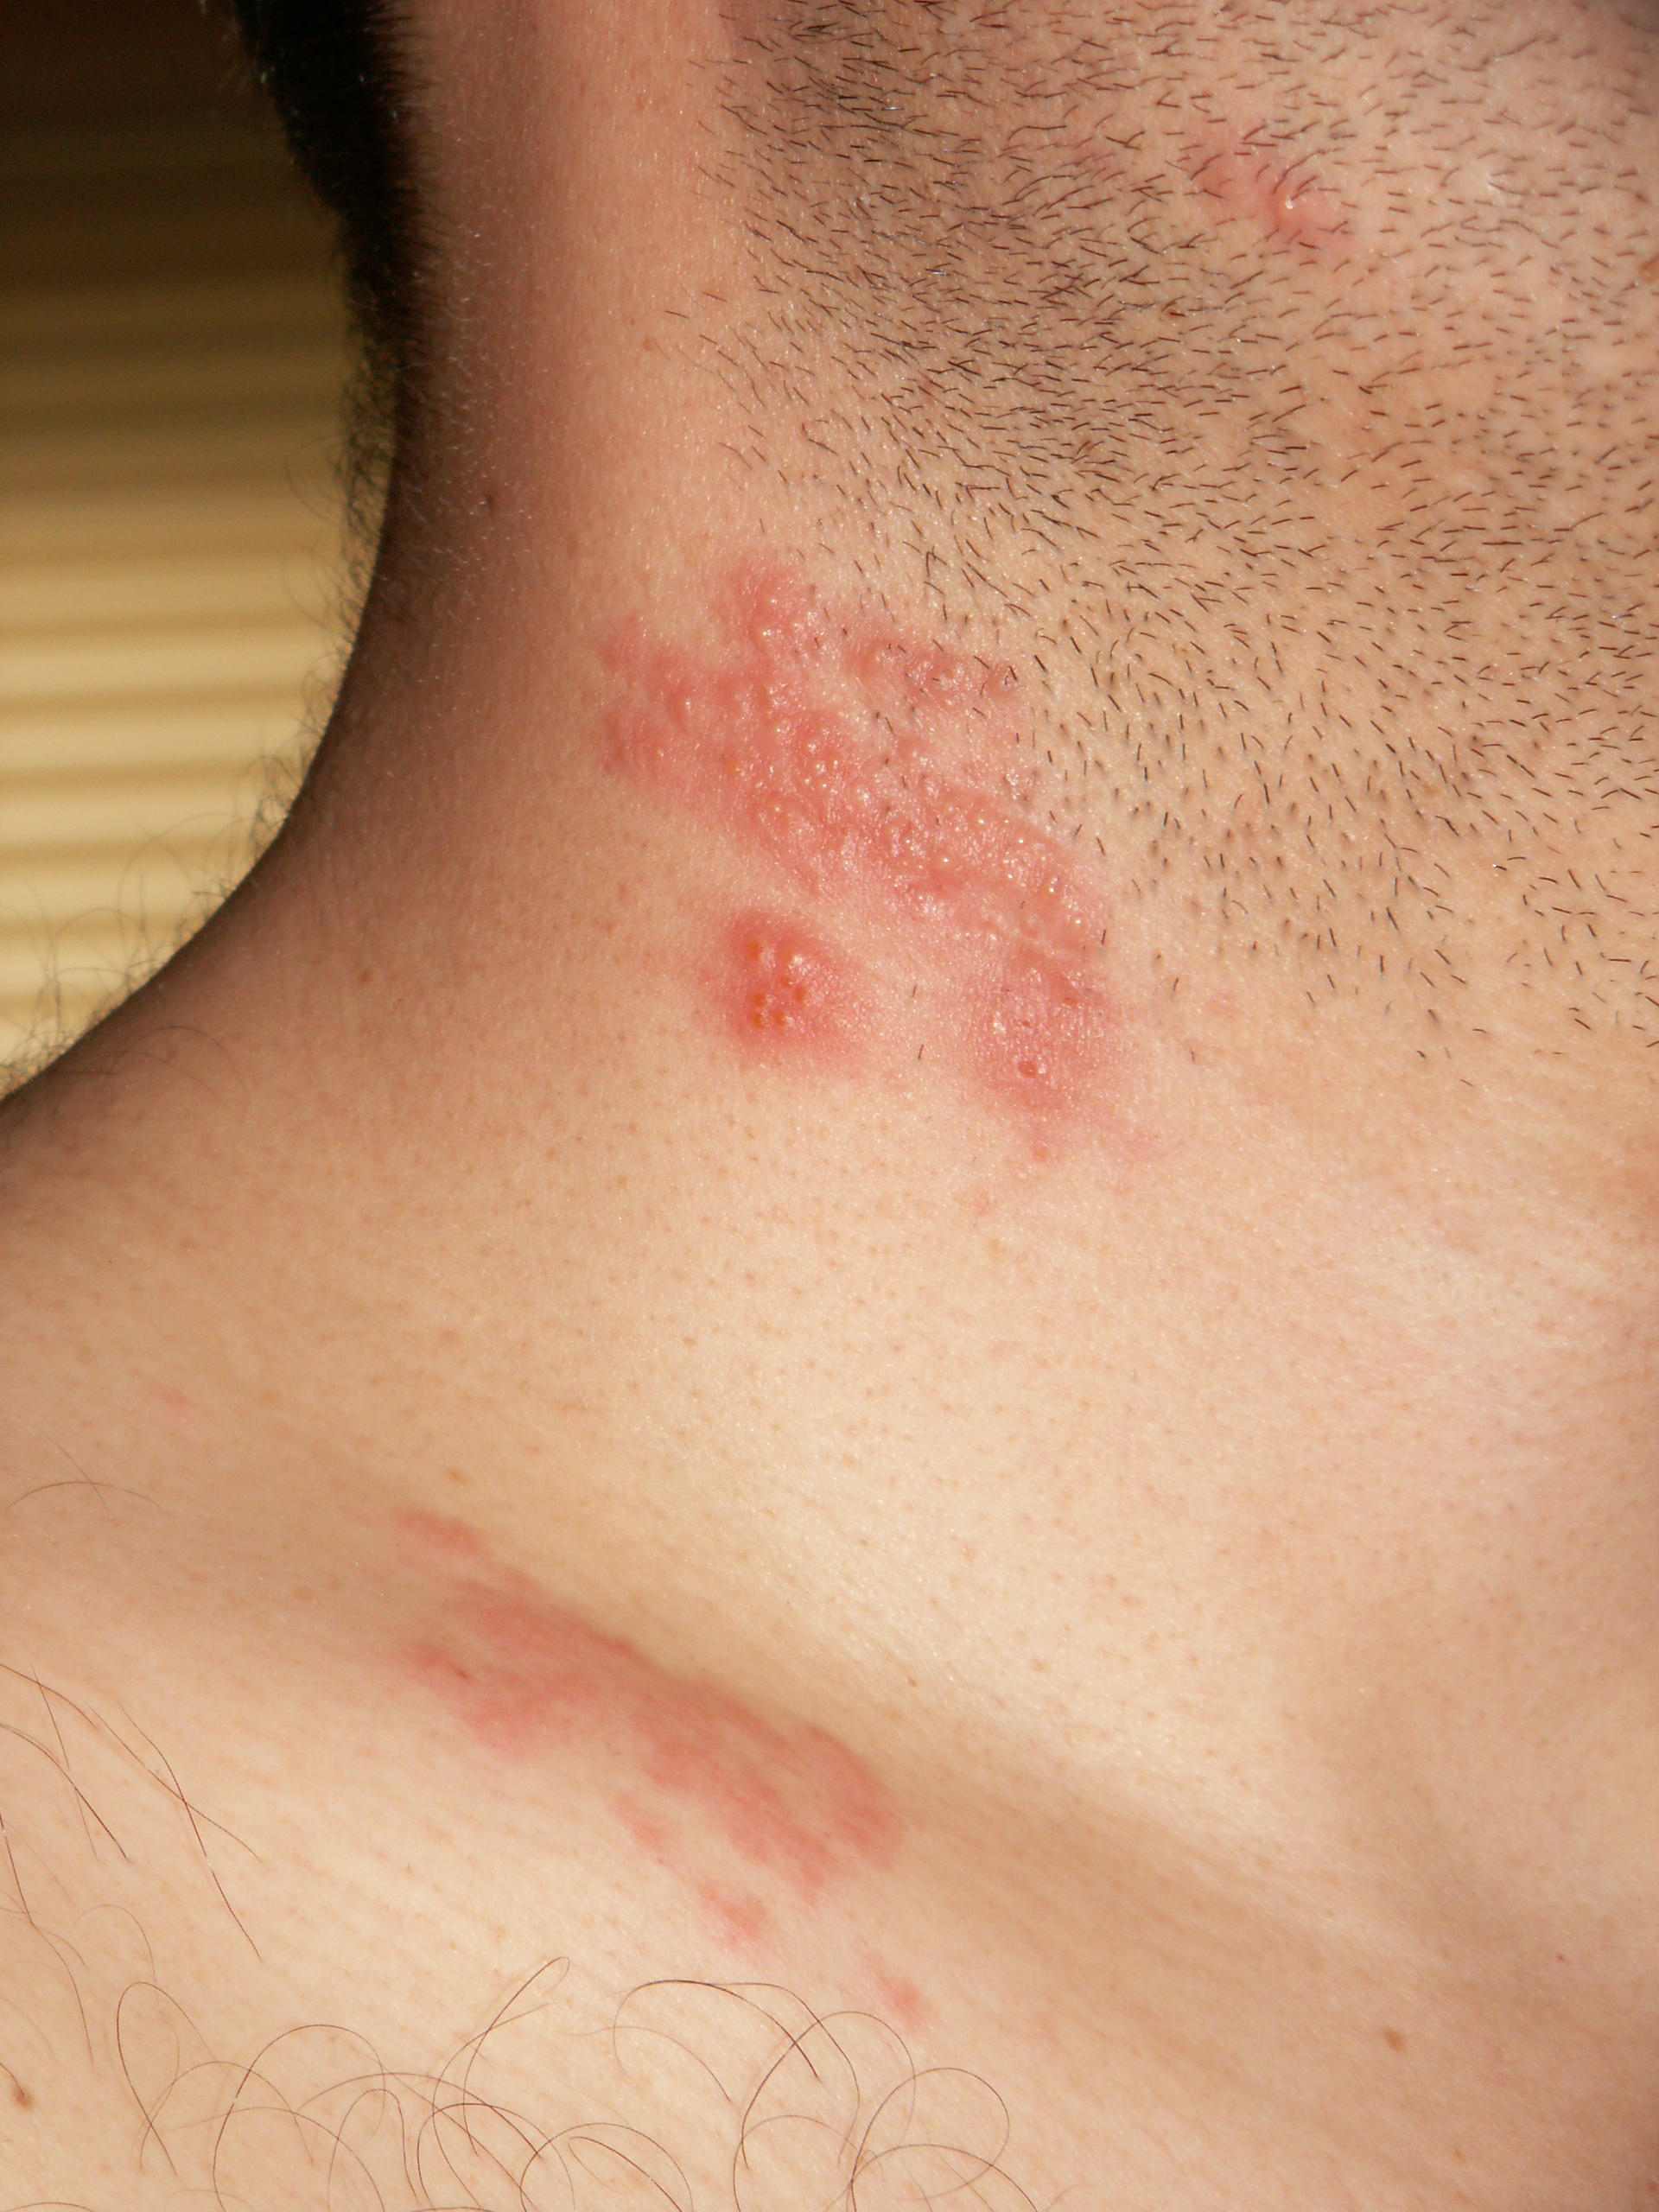 Is shingles and hpv virus. Zona zoster - Wikipedia